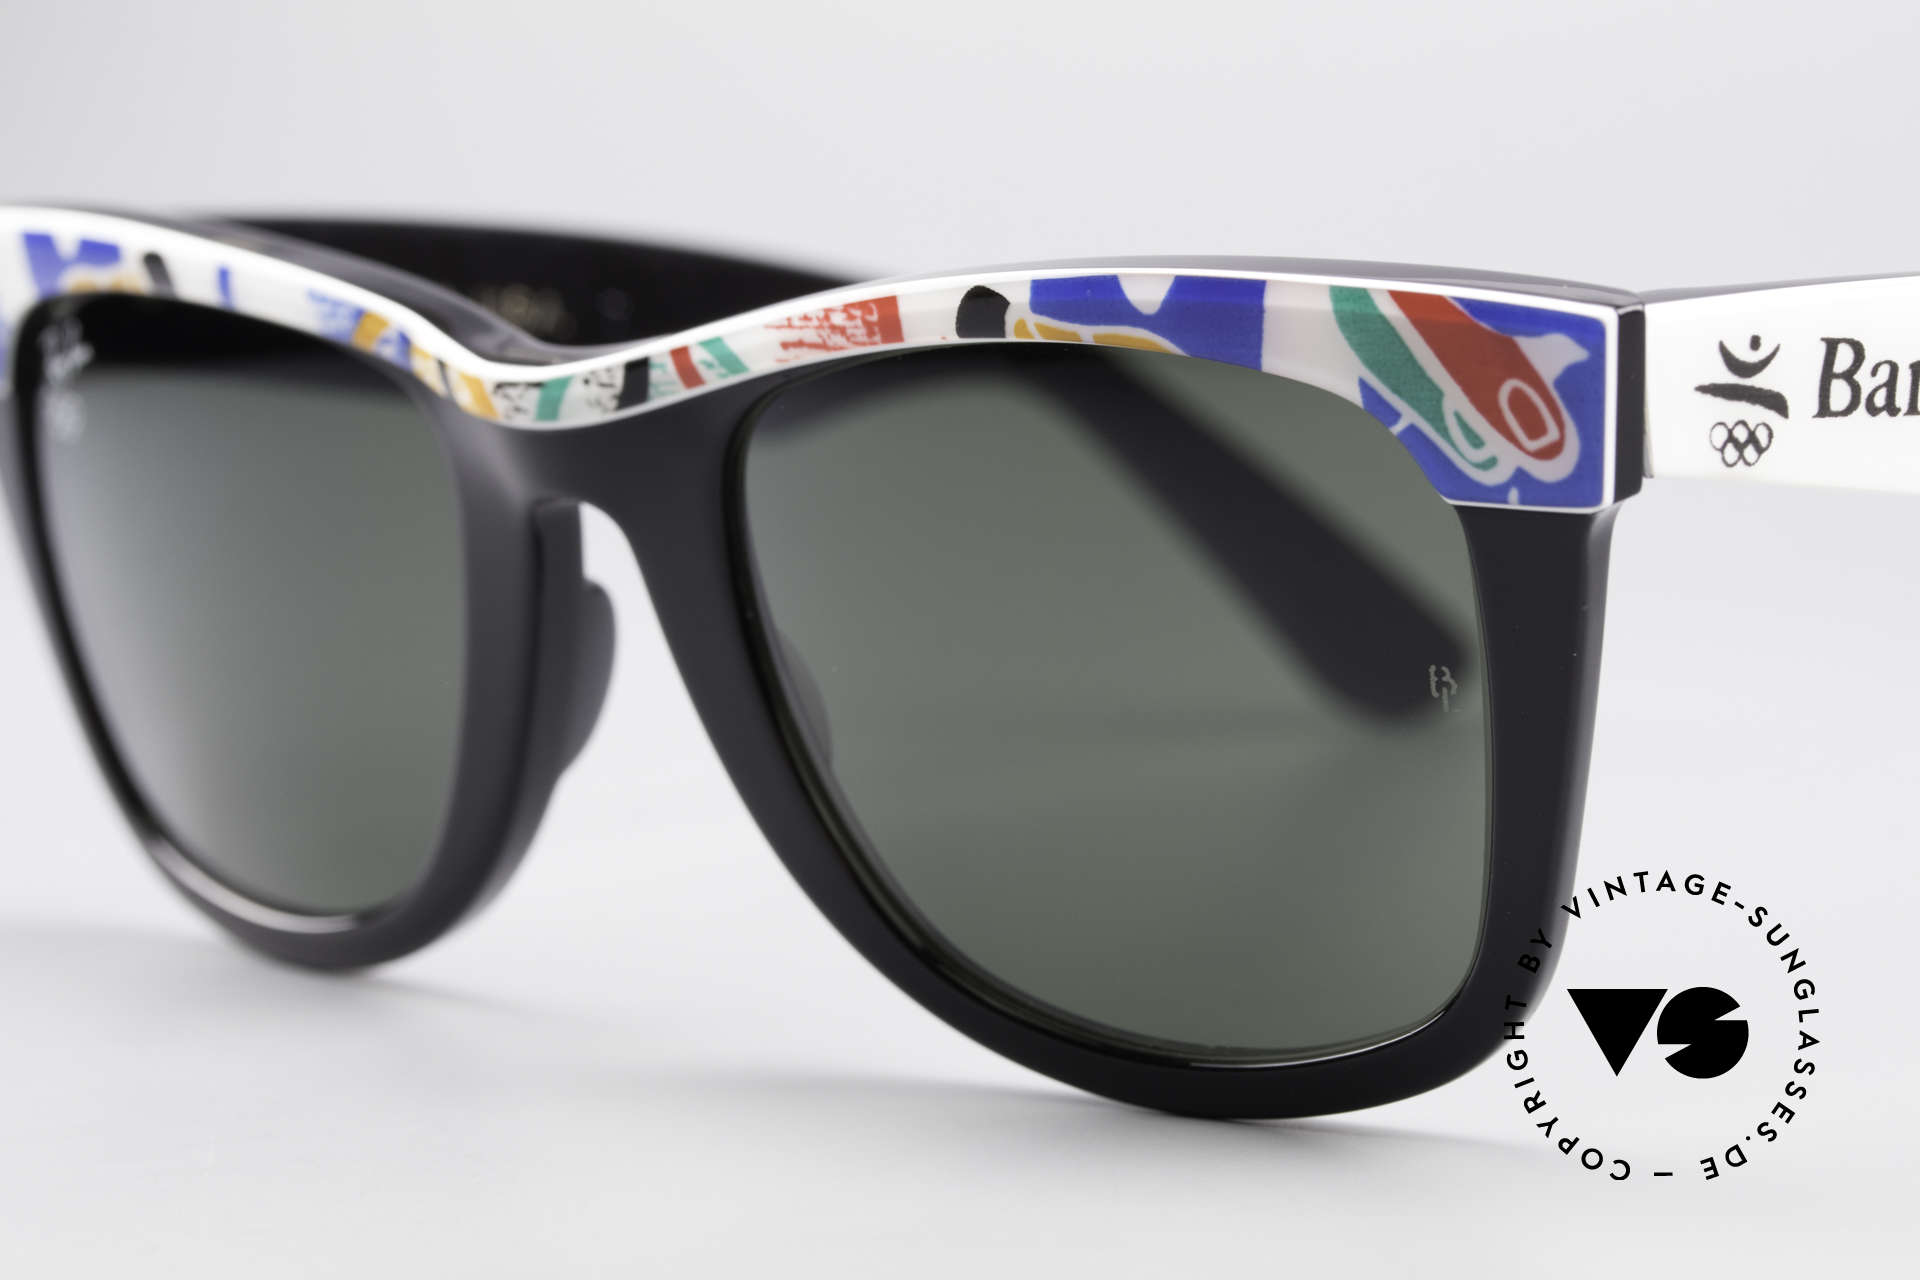 Ray Ban Wayfarer I Olympic Games Barcelona, unworn B&L rarity (a real collector's item, worldwide), Made for Men and Women